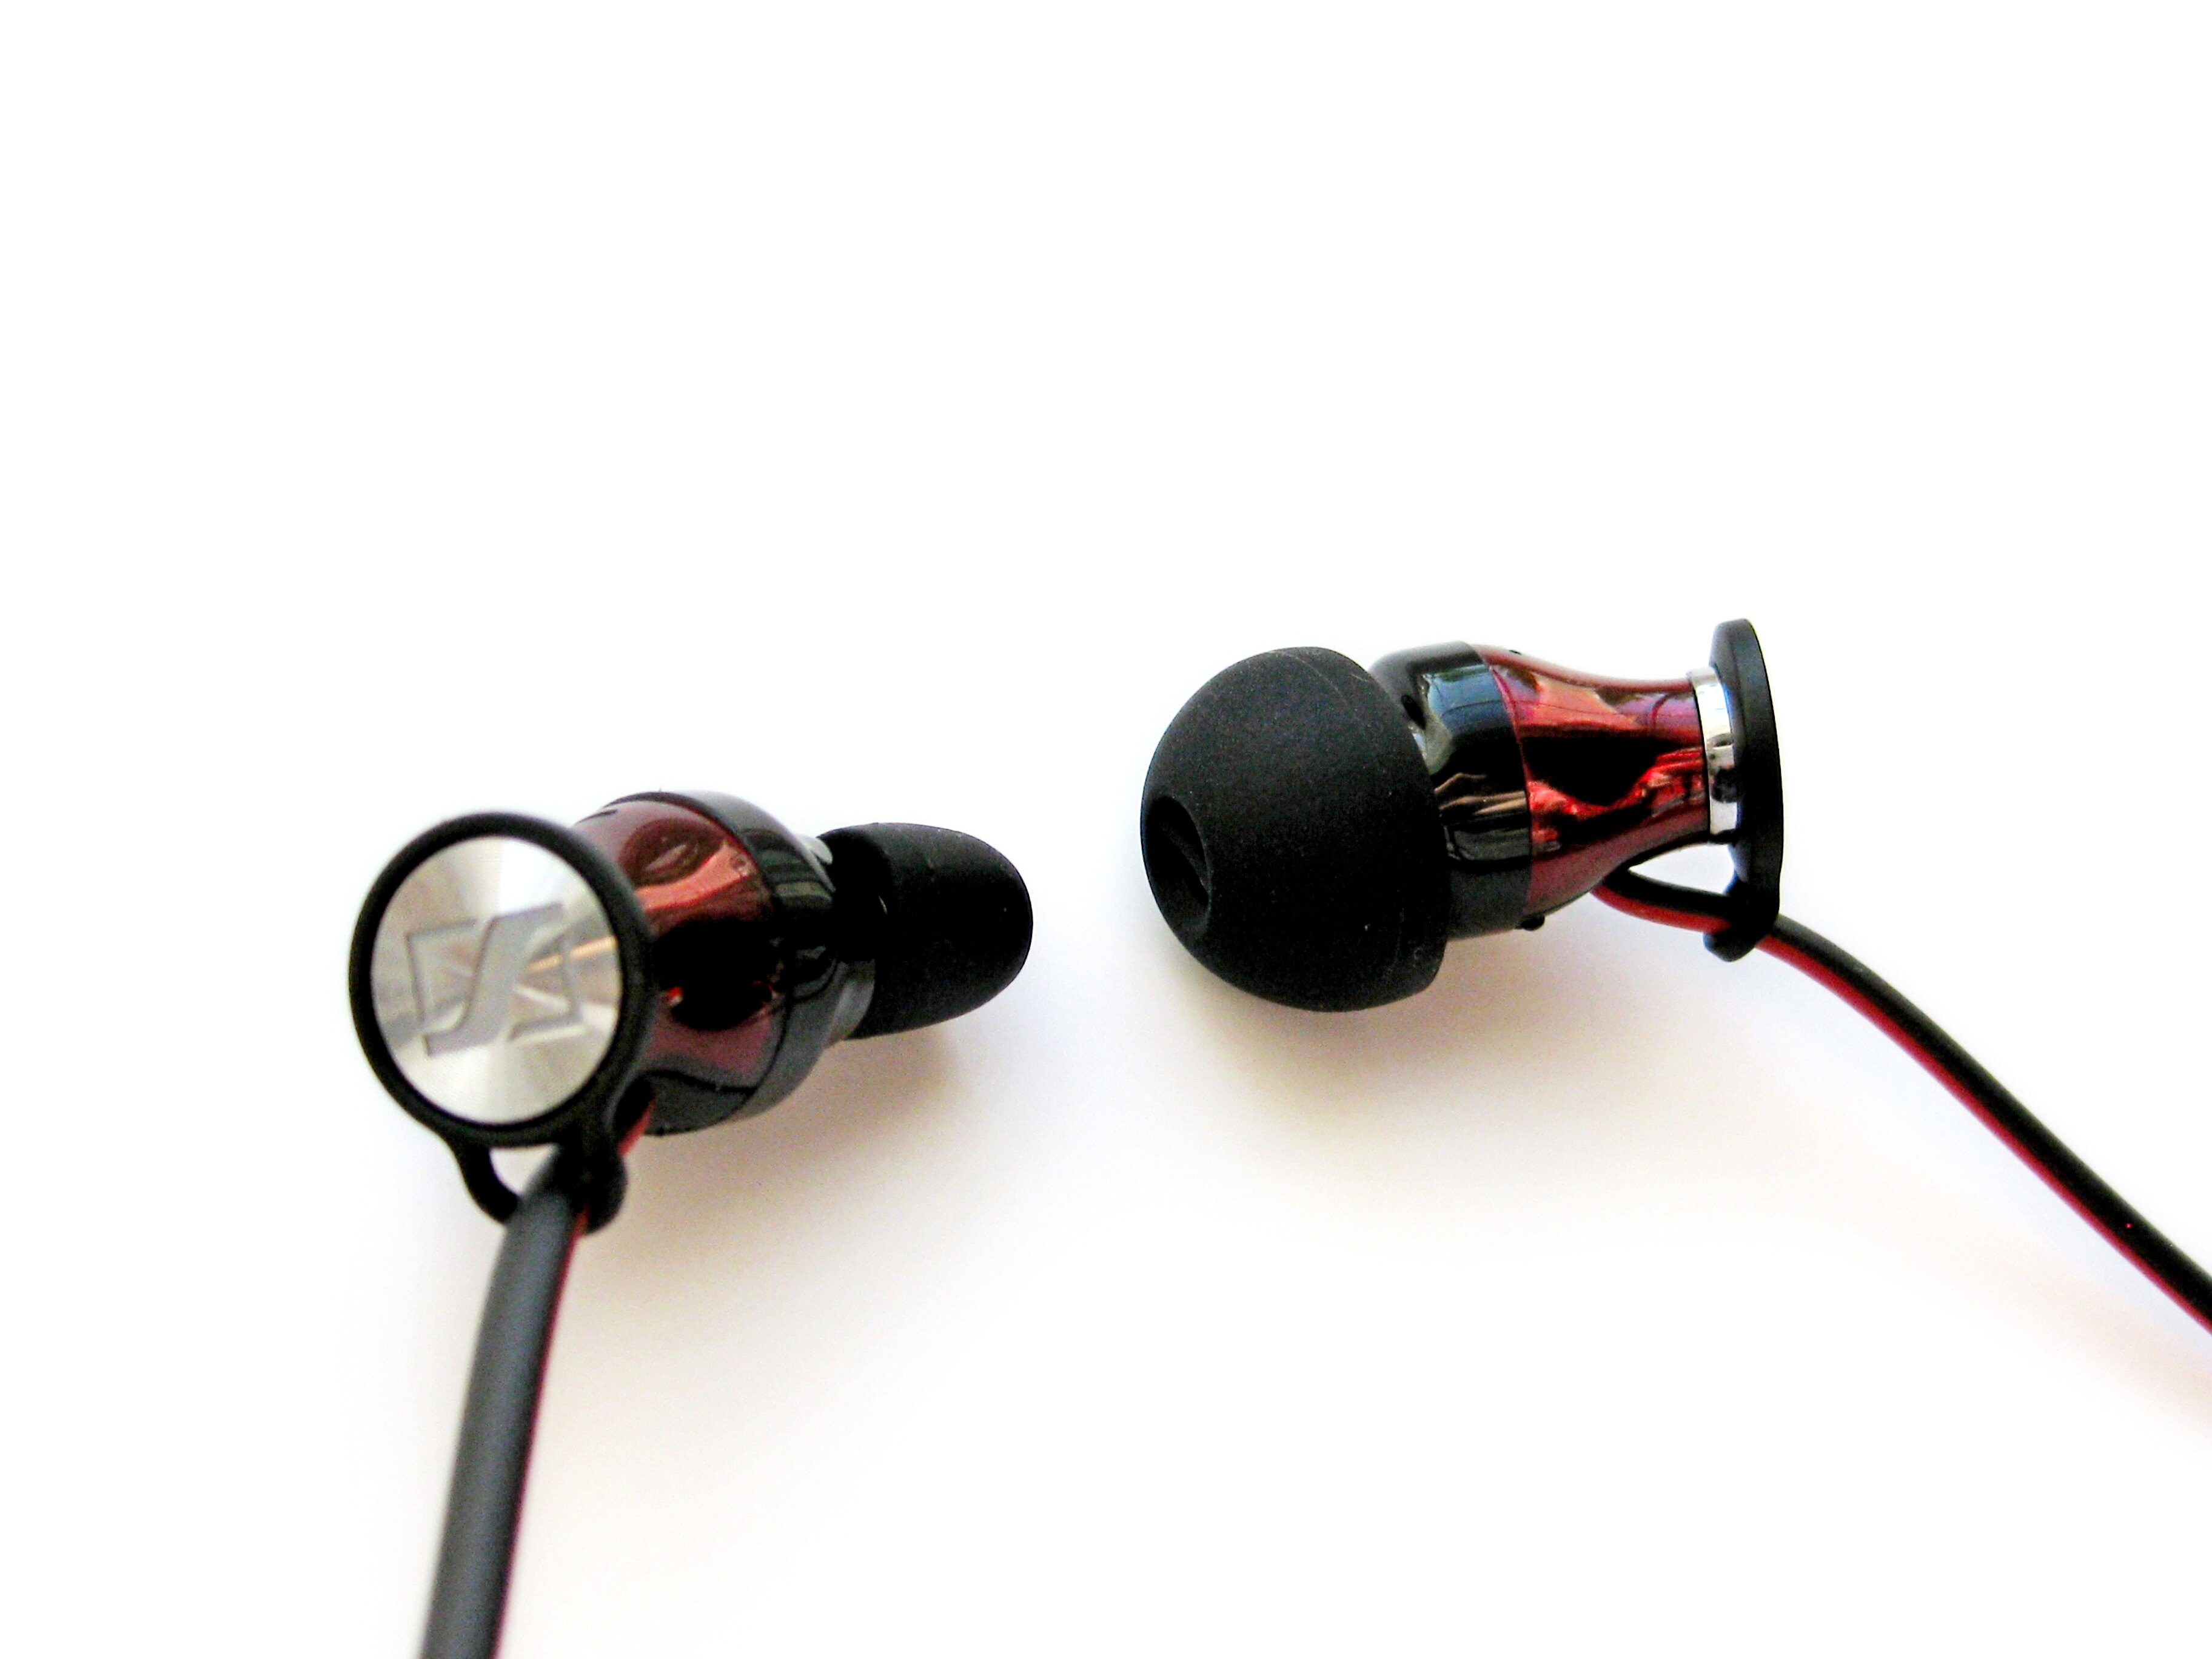 8pcs XS//S//M//L Comfort Eartips buds for Sennheiser CX 3.00 and CX 5.00 B-NSEN